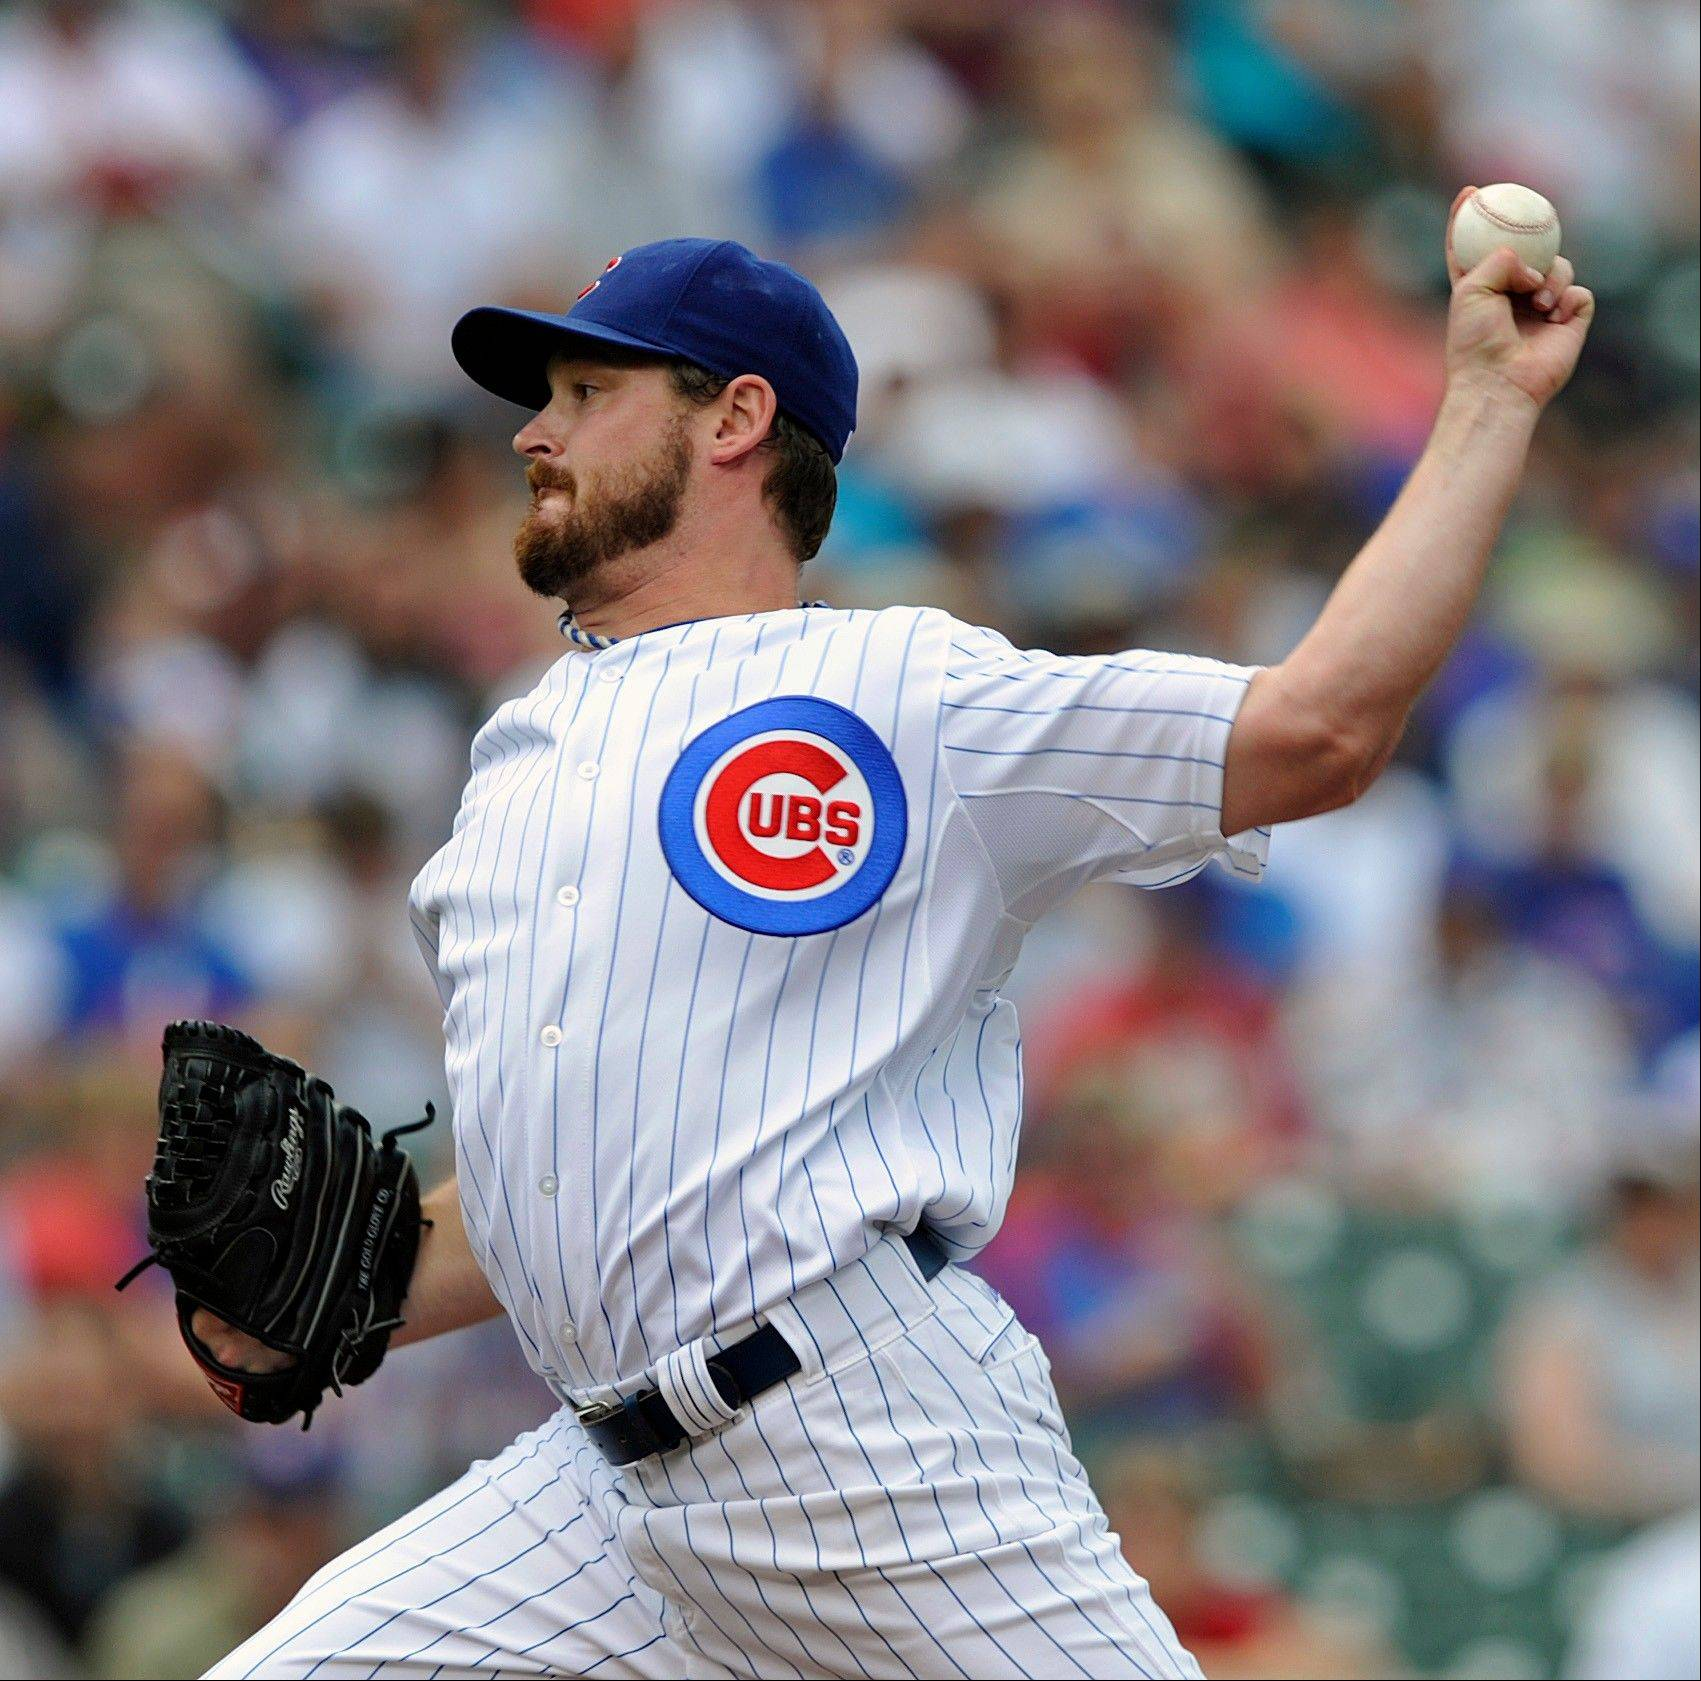 Cubs starter Travis Wood has a shot an earning an all-star berth, according to Len Kasper.